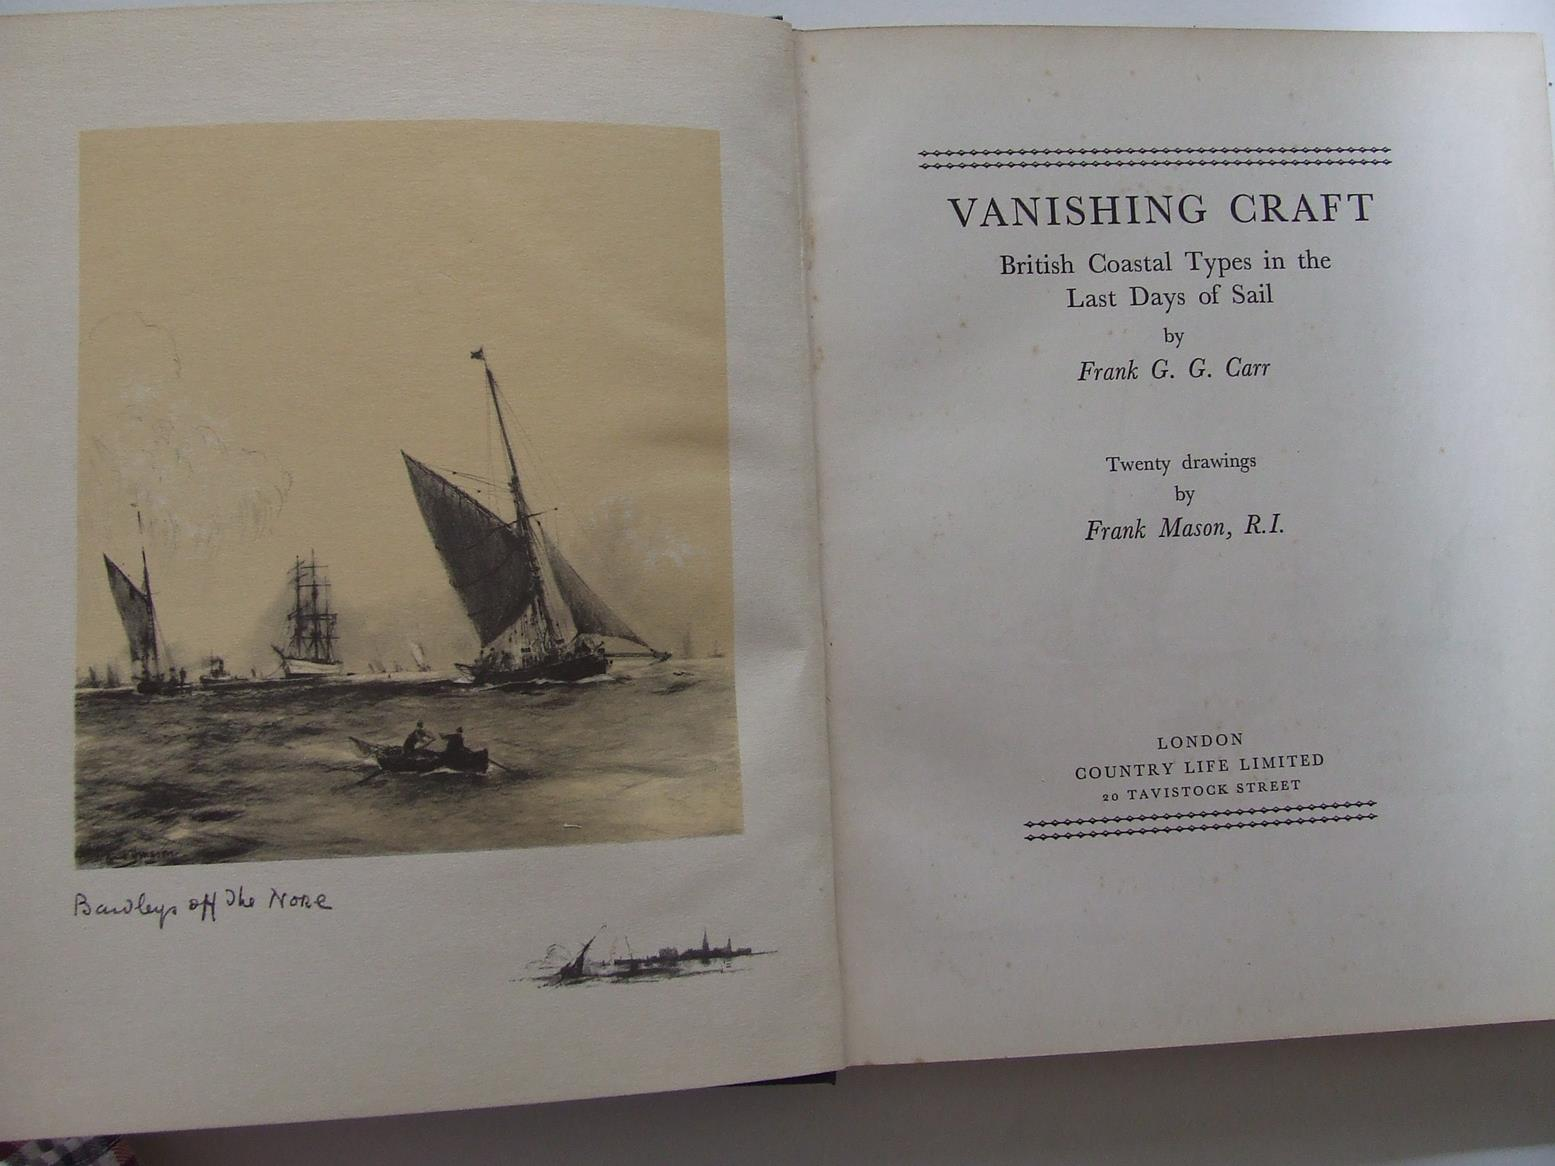 Vanishing Craft, British coastal types in the last days of sail